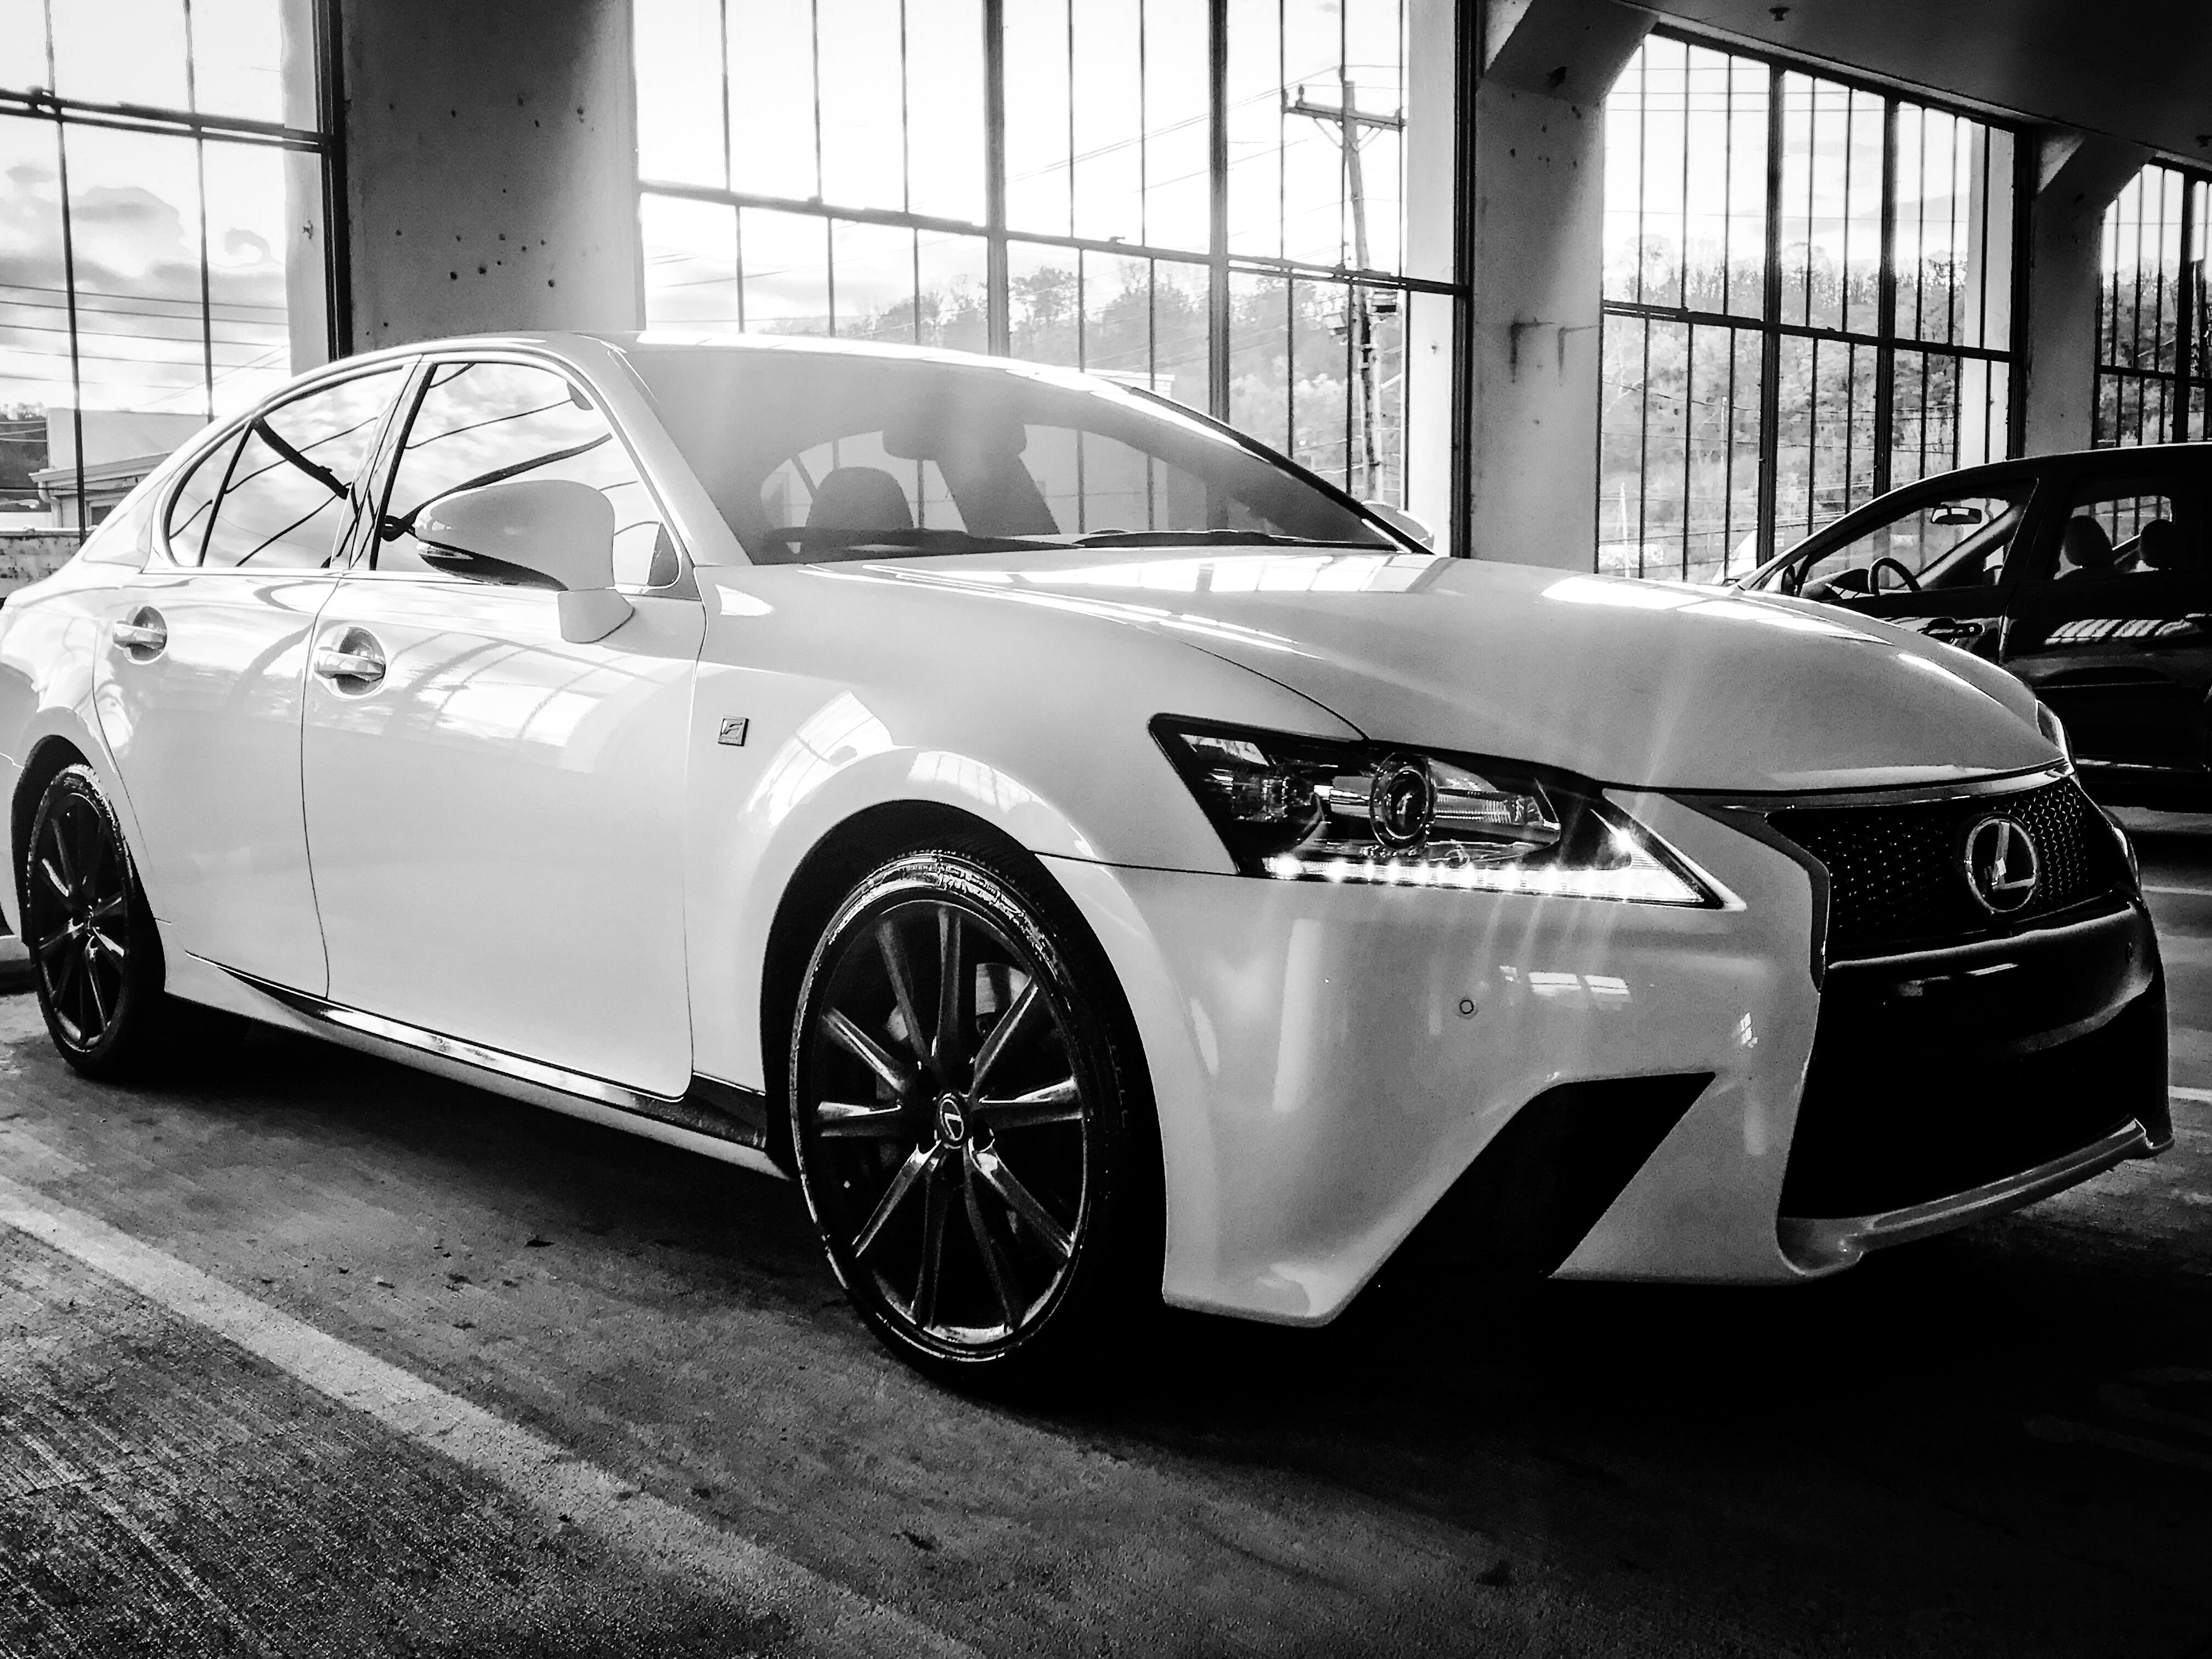 Grayscale Photography of Lexus Sedan